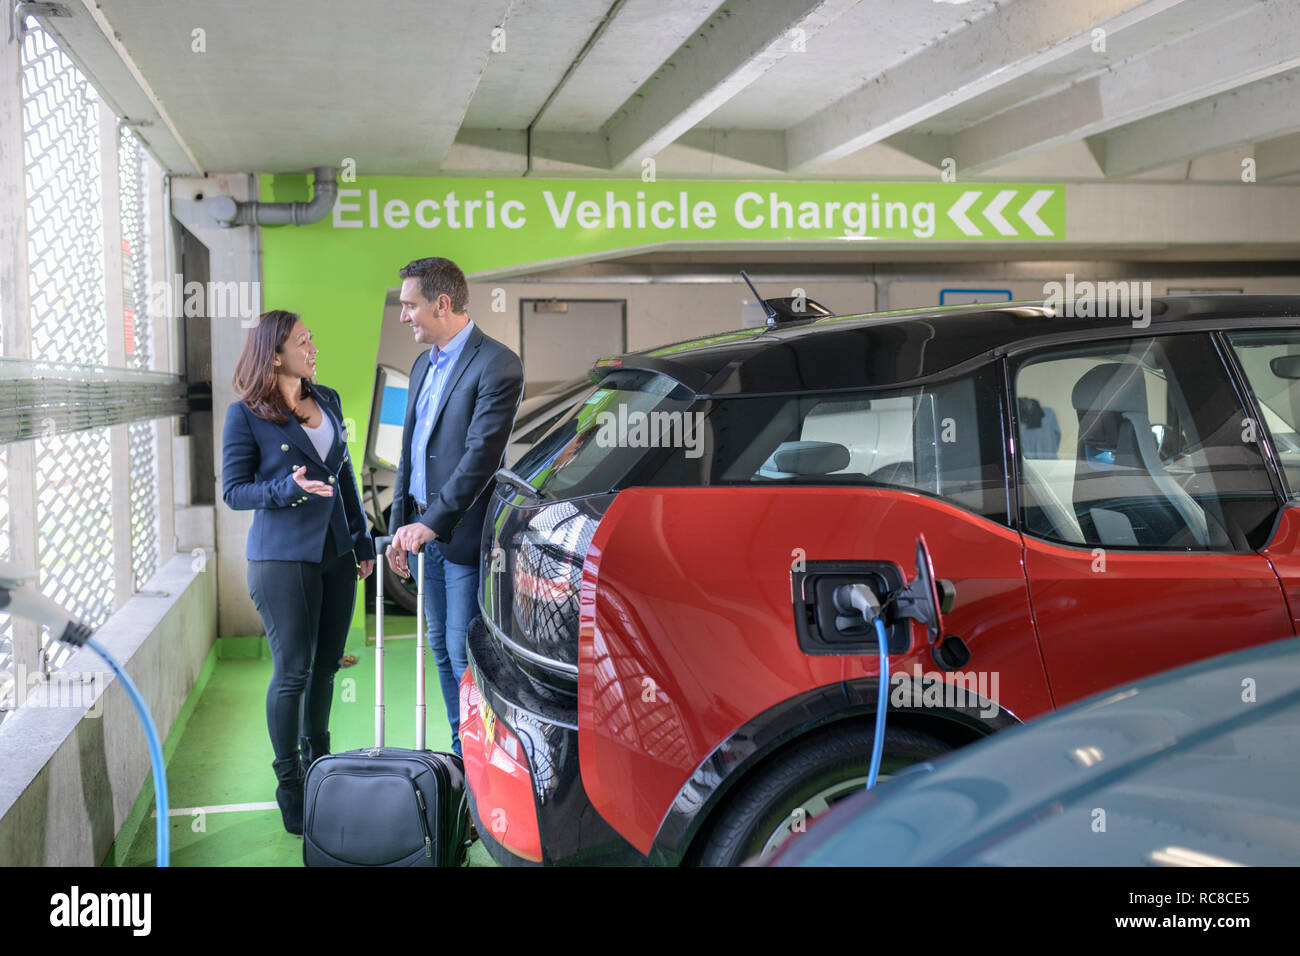 Man and woman charging electric car at charge bay, Manchester, UK Stock Photo